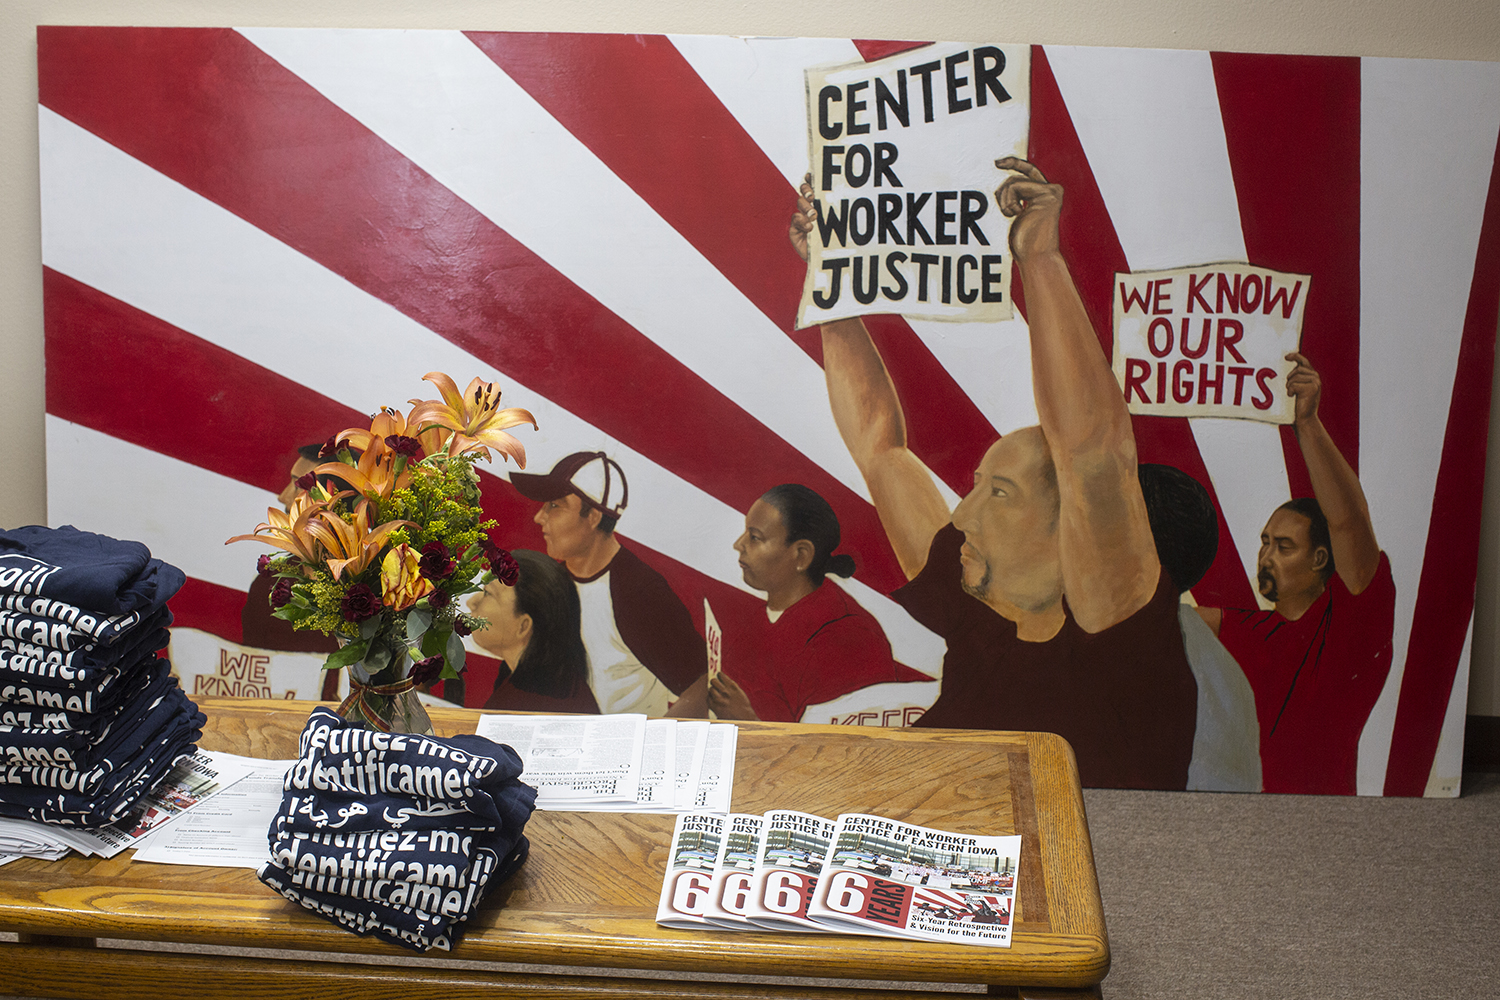 The Center for Worker Justice recently moved to a new location in order to expand the amount of space they had available for offices and meeting rooms.